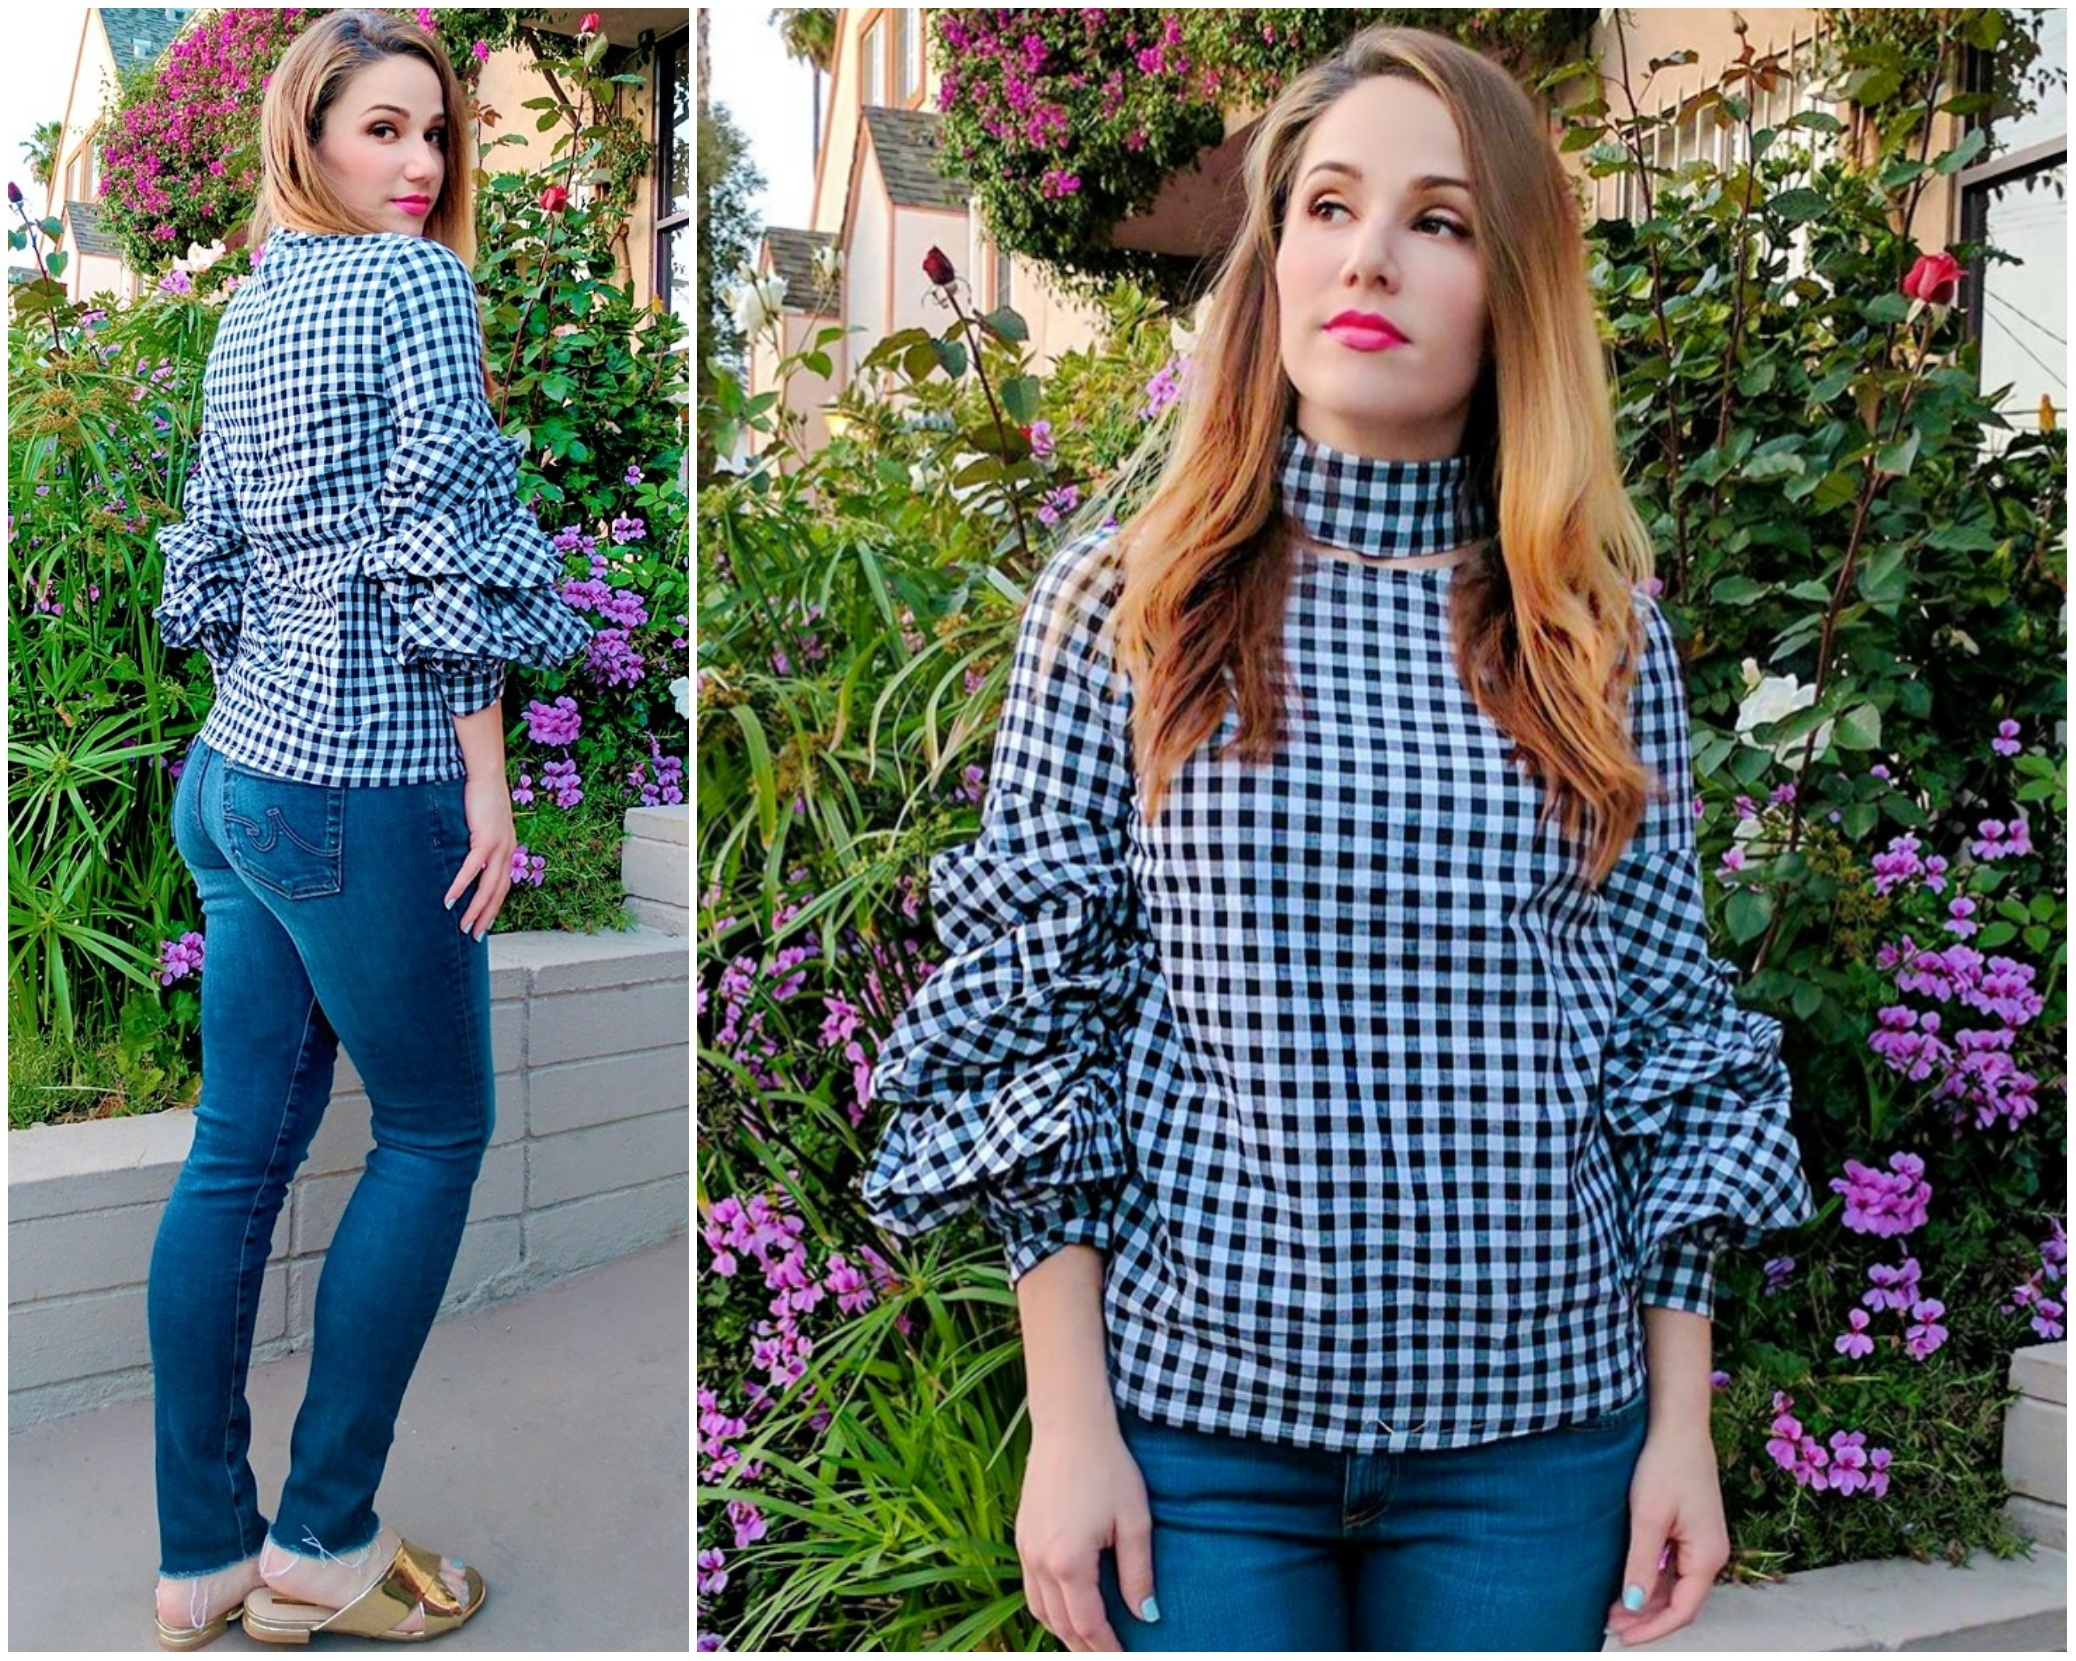 Spring Fashion Trends: Gingham Top and Metallic Mules